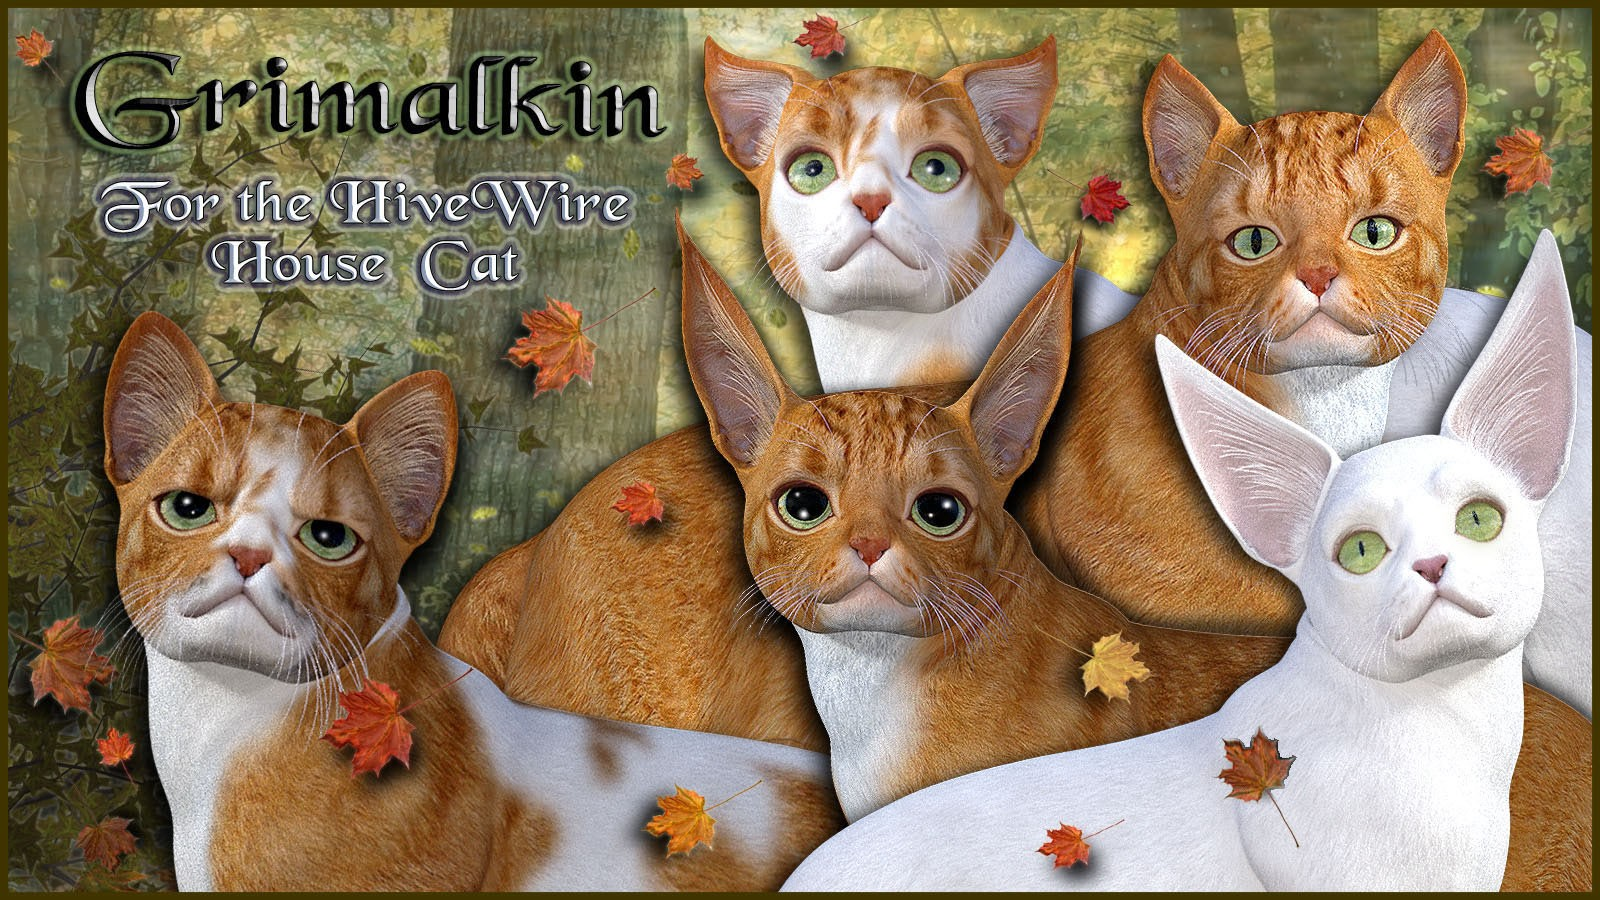 12050-grimalkin-for-the-hivewire-house-cat-main.jpg